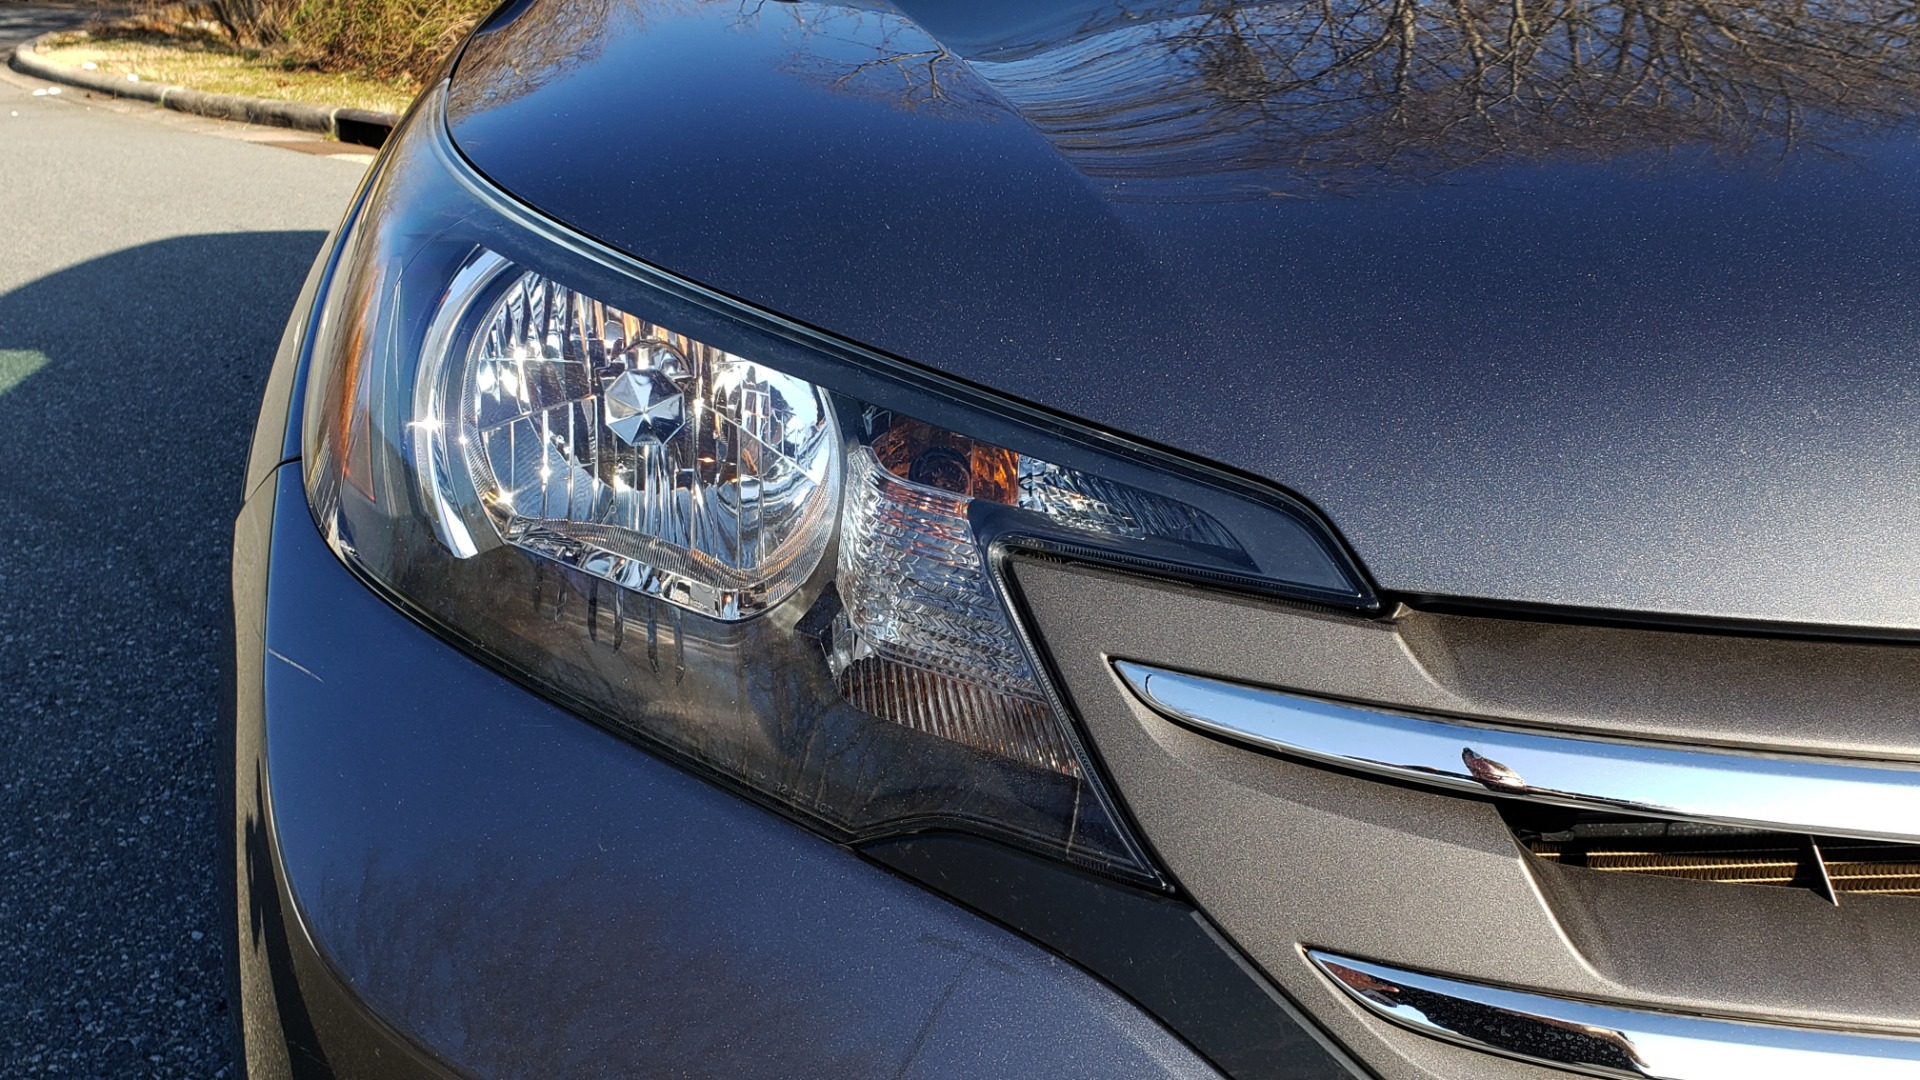 Used 2013 Honda CR-V LX 5-PASS SUV / PWR WNDWS / PWR LKS / VERY CLEAN! for sale Sold at Formula Imports in Charlotte NC 28227 13